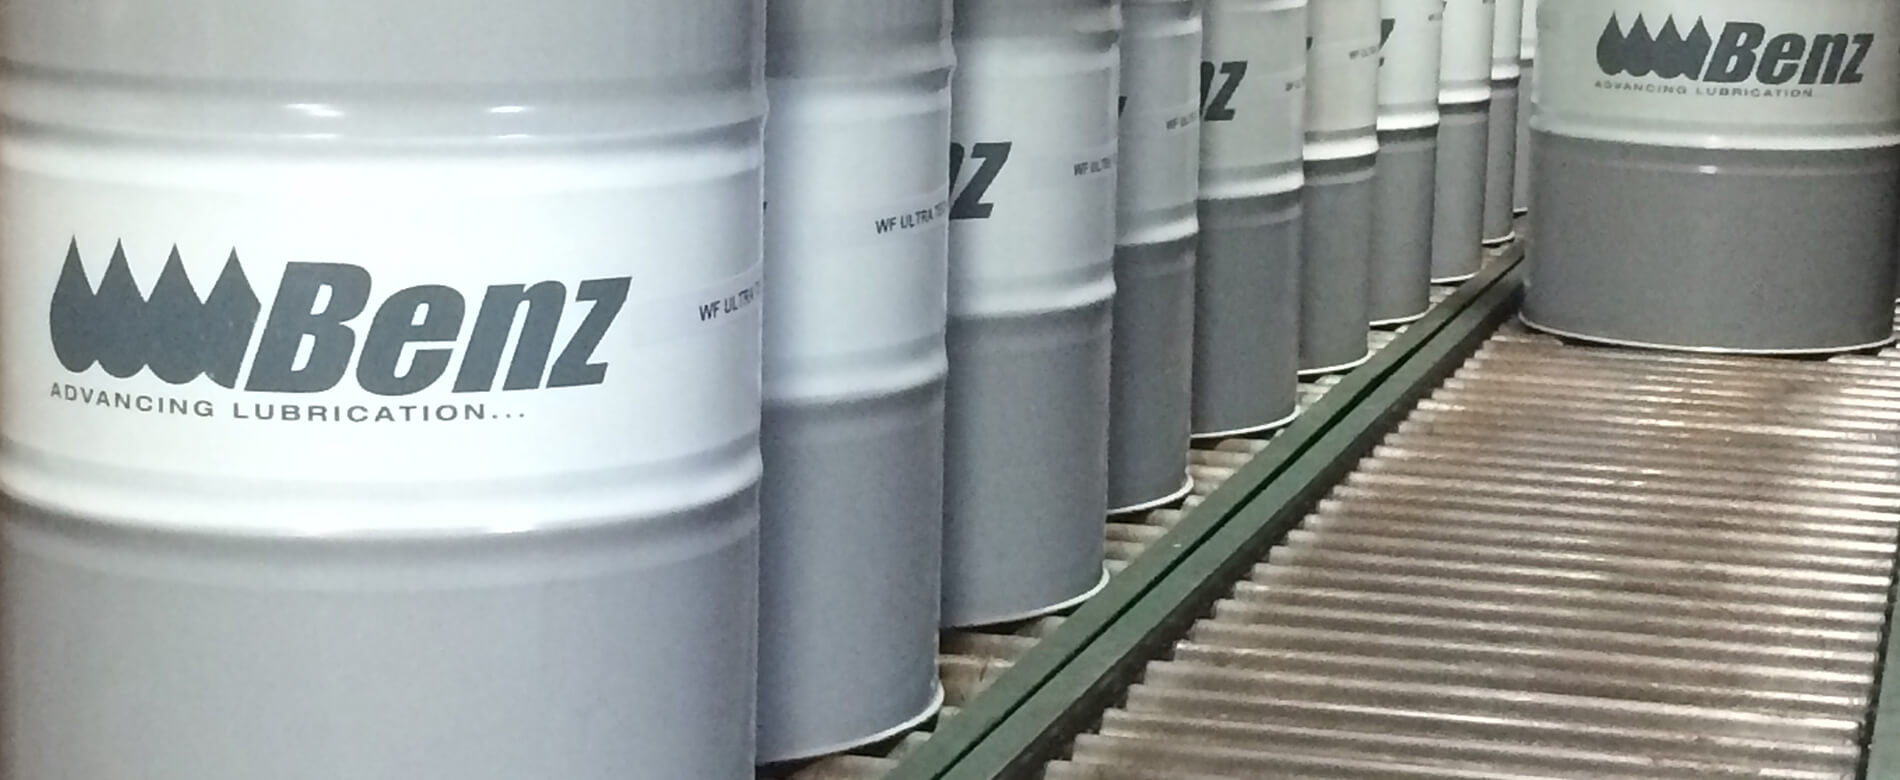 benz oil 55 gallon drums